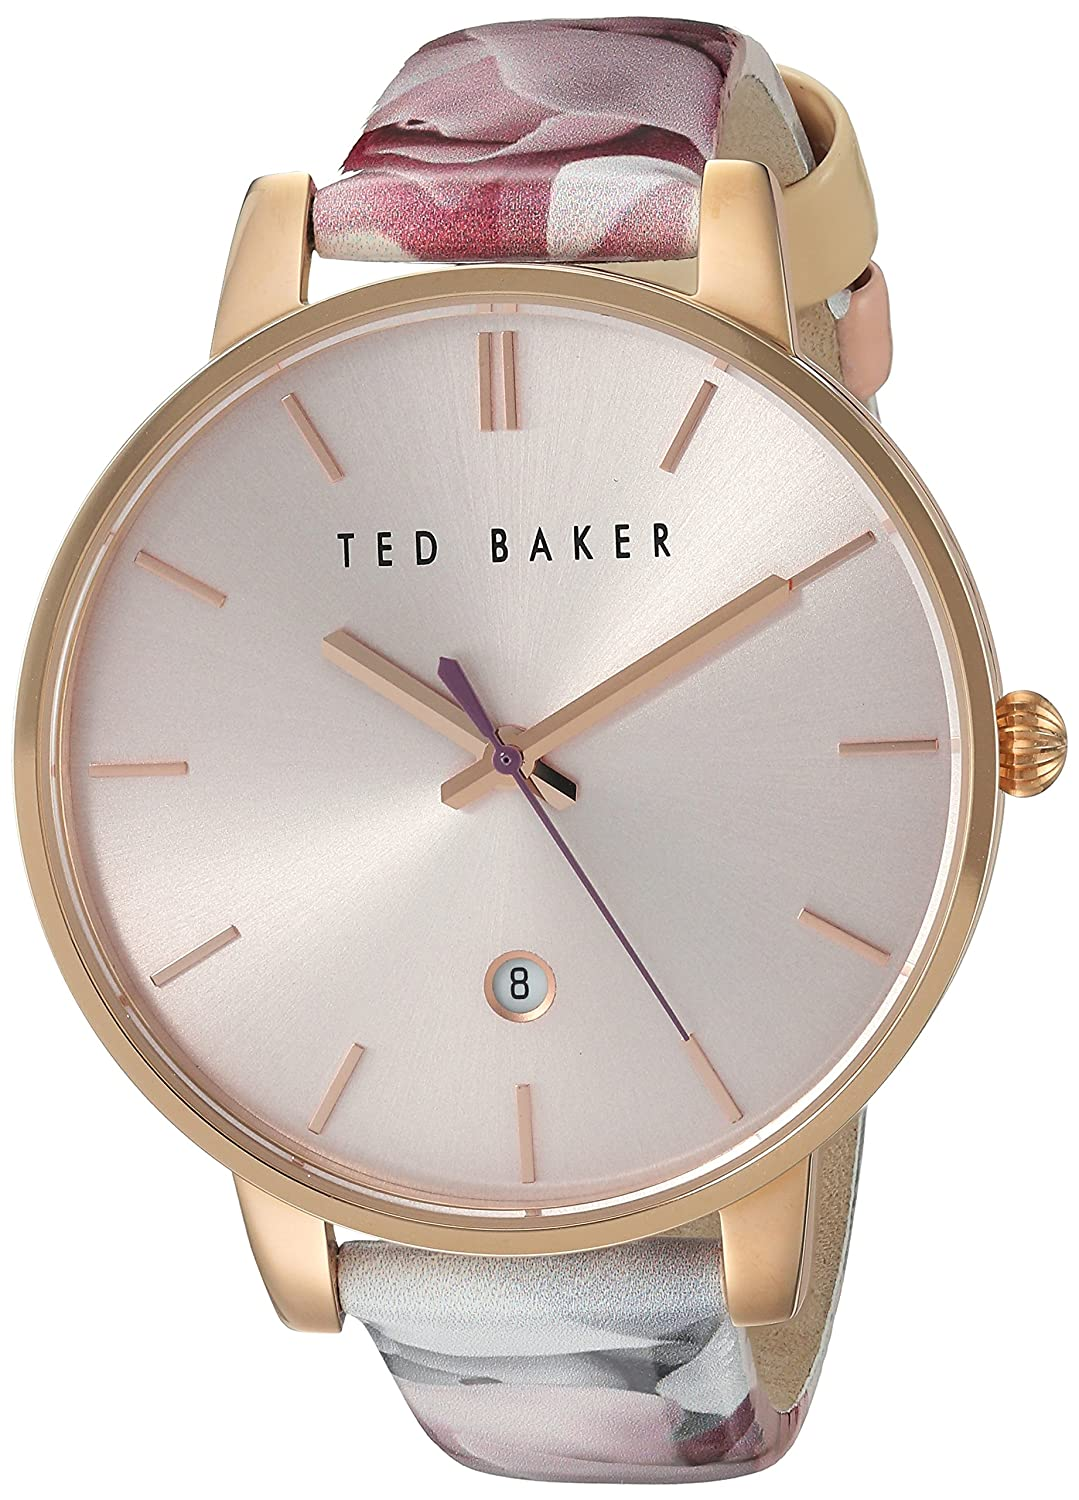 Damen Rose Gold Ton Quarz Akku Ted Baker Fashion Uhr an Lederband mit Datum. te10030695